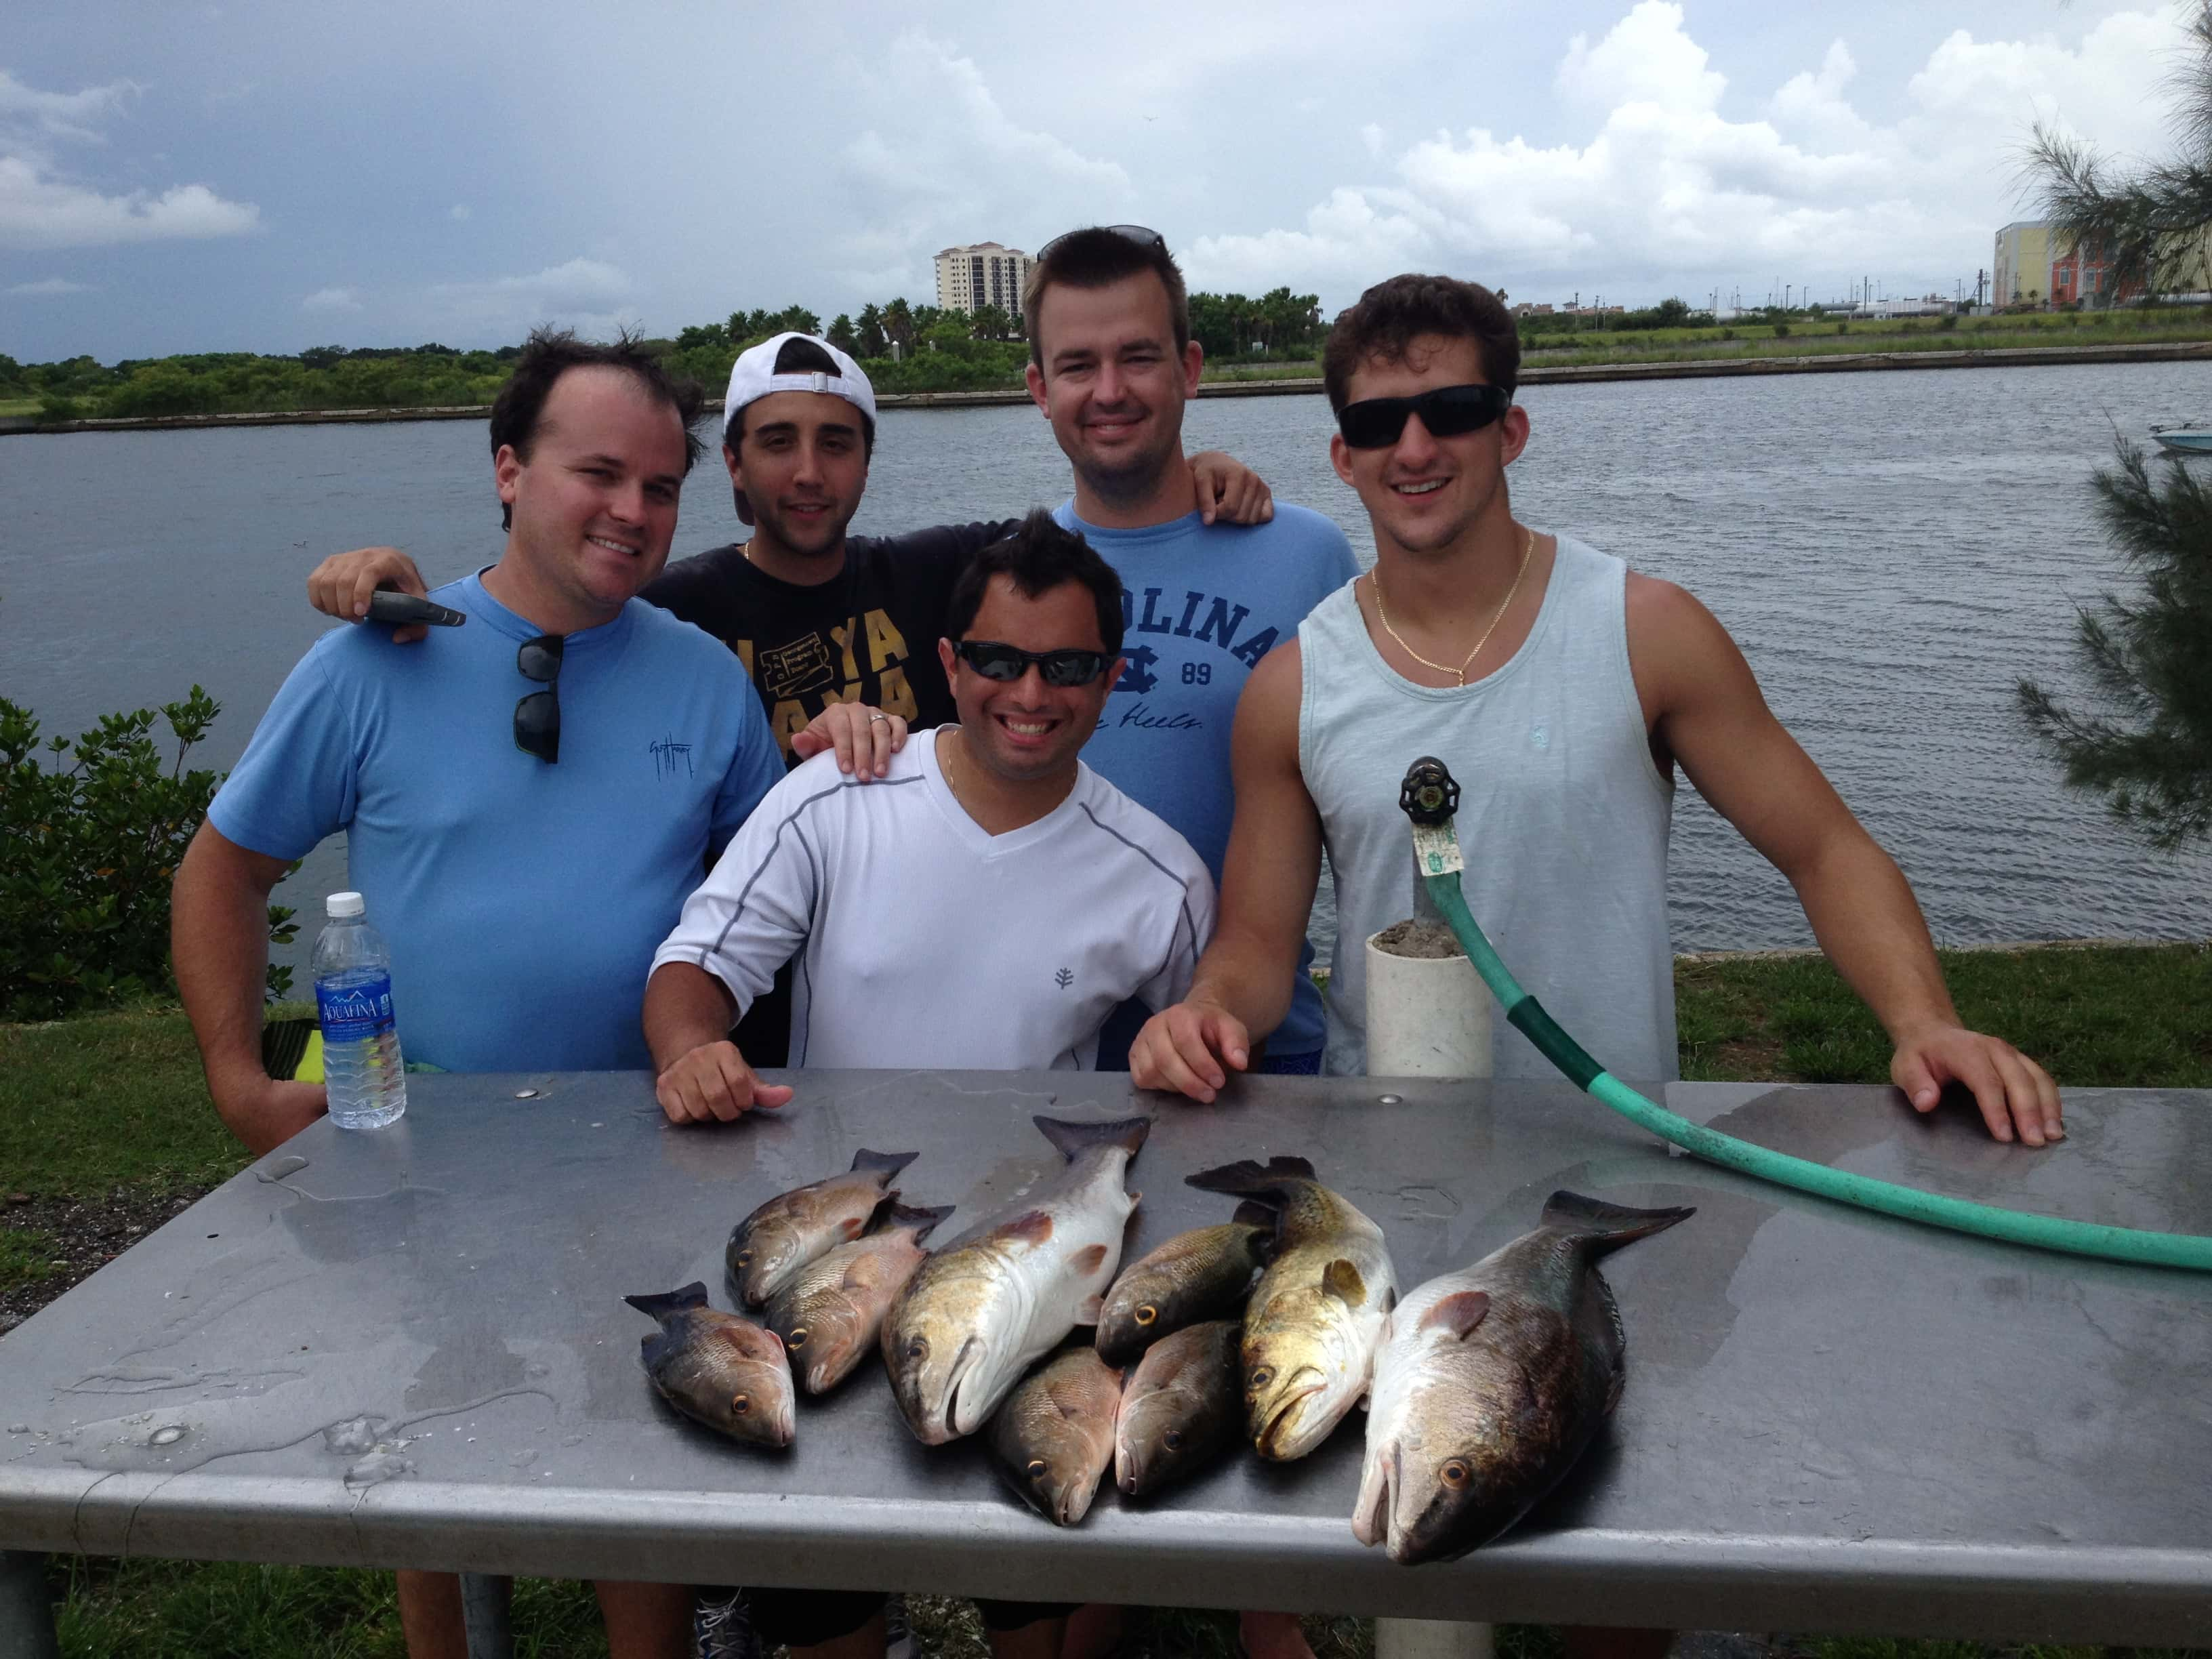 Bachelor parties in tampa florida fishing up to 6 people for Videos of people fishing